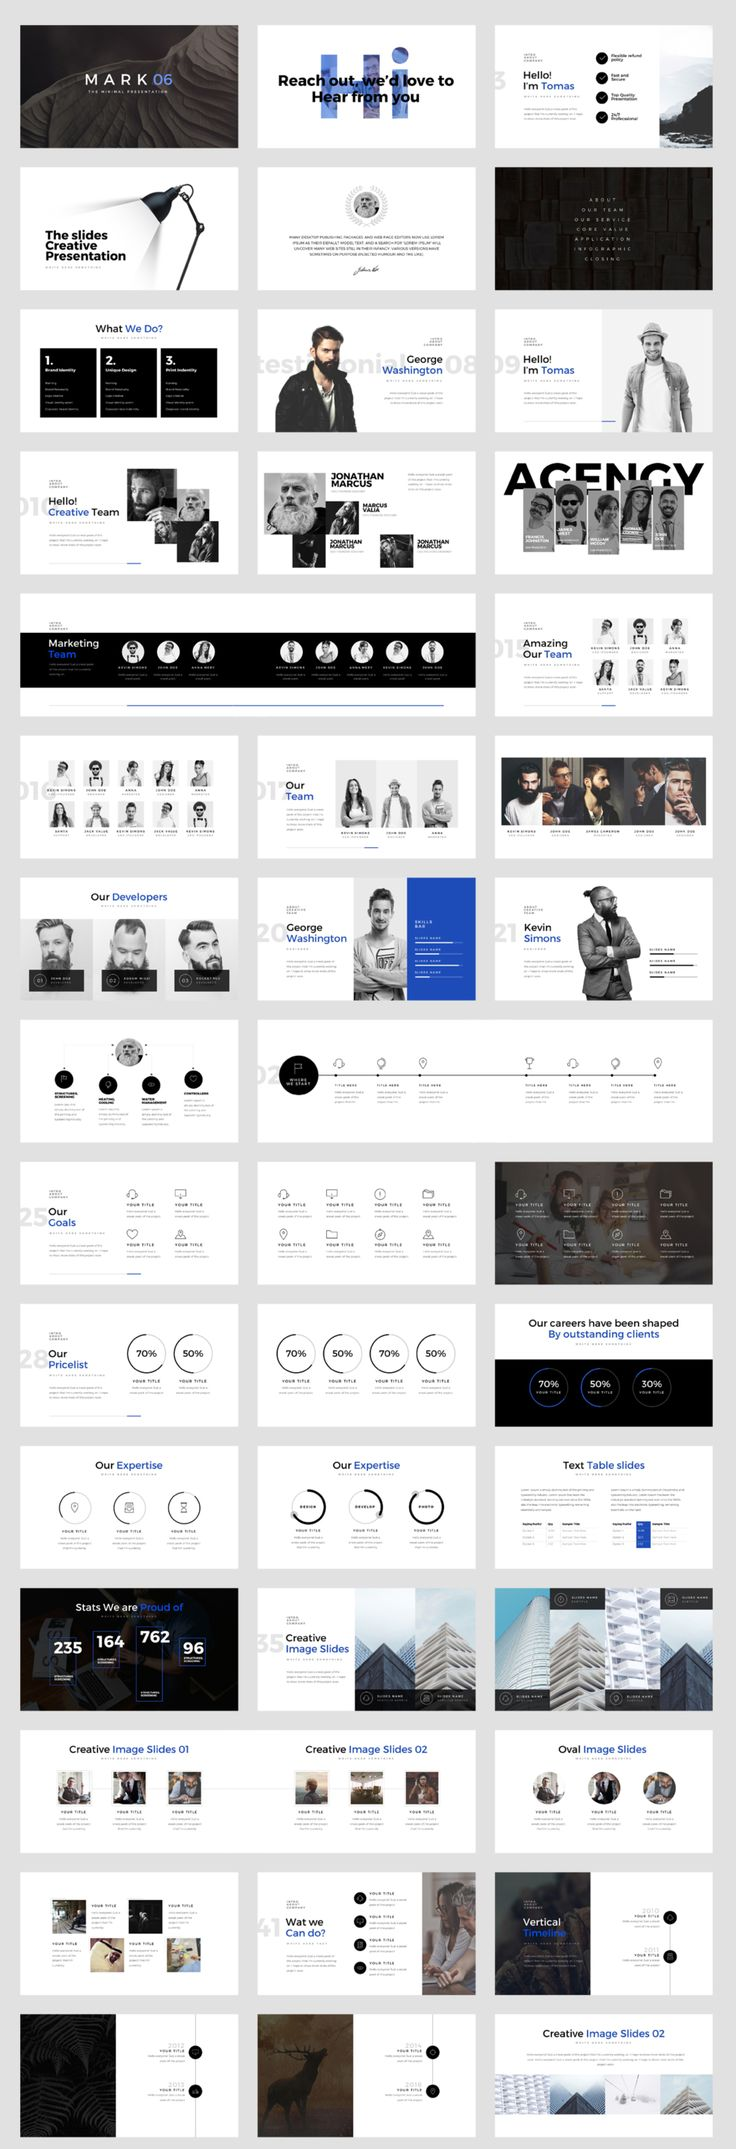 A powerful & creative slide presentation available for PowerPoint Slides. It comes with 100+ unique presentation slides with great professional layout and creative design. Easy to change colors, modify shapes, texts, & charts. All shapes are editable. Icons and 20 colors versions included. Dark & Light BG version.